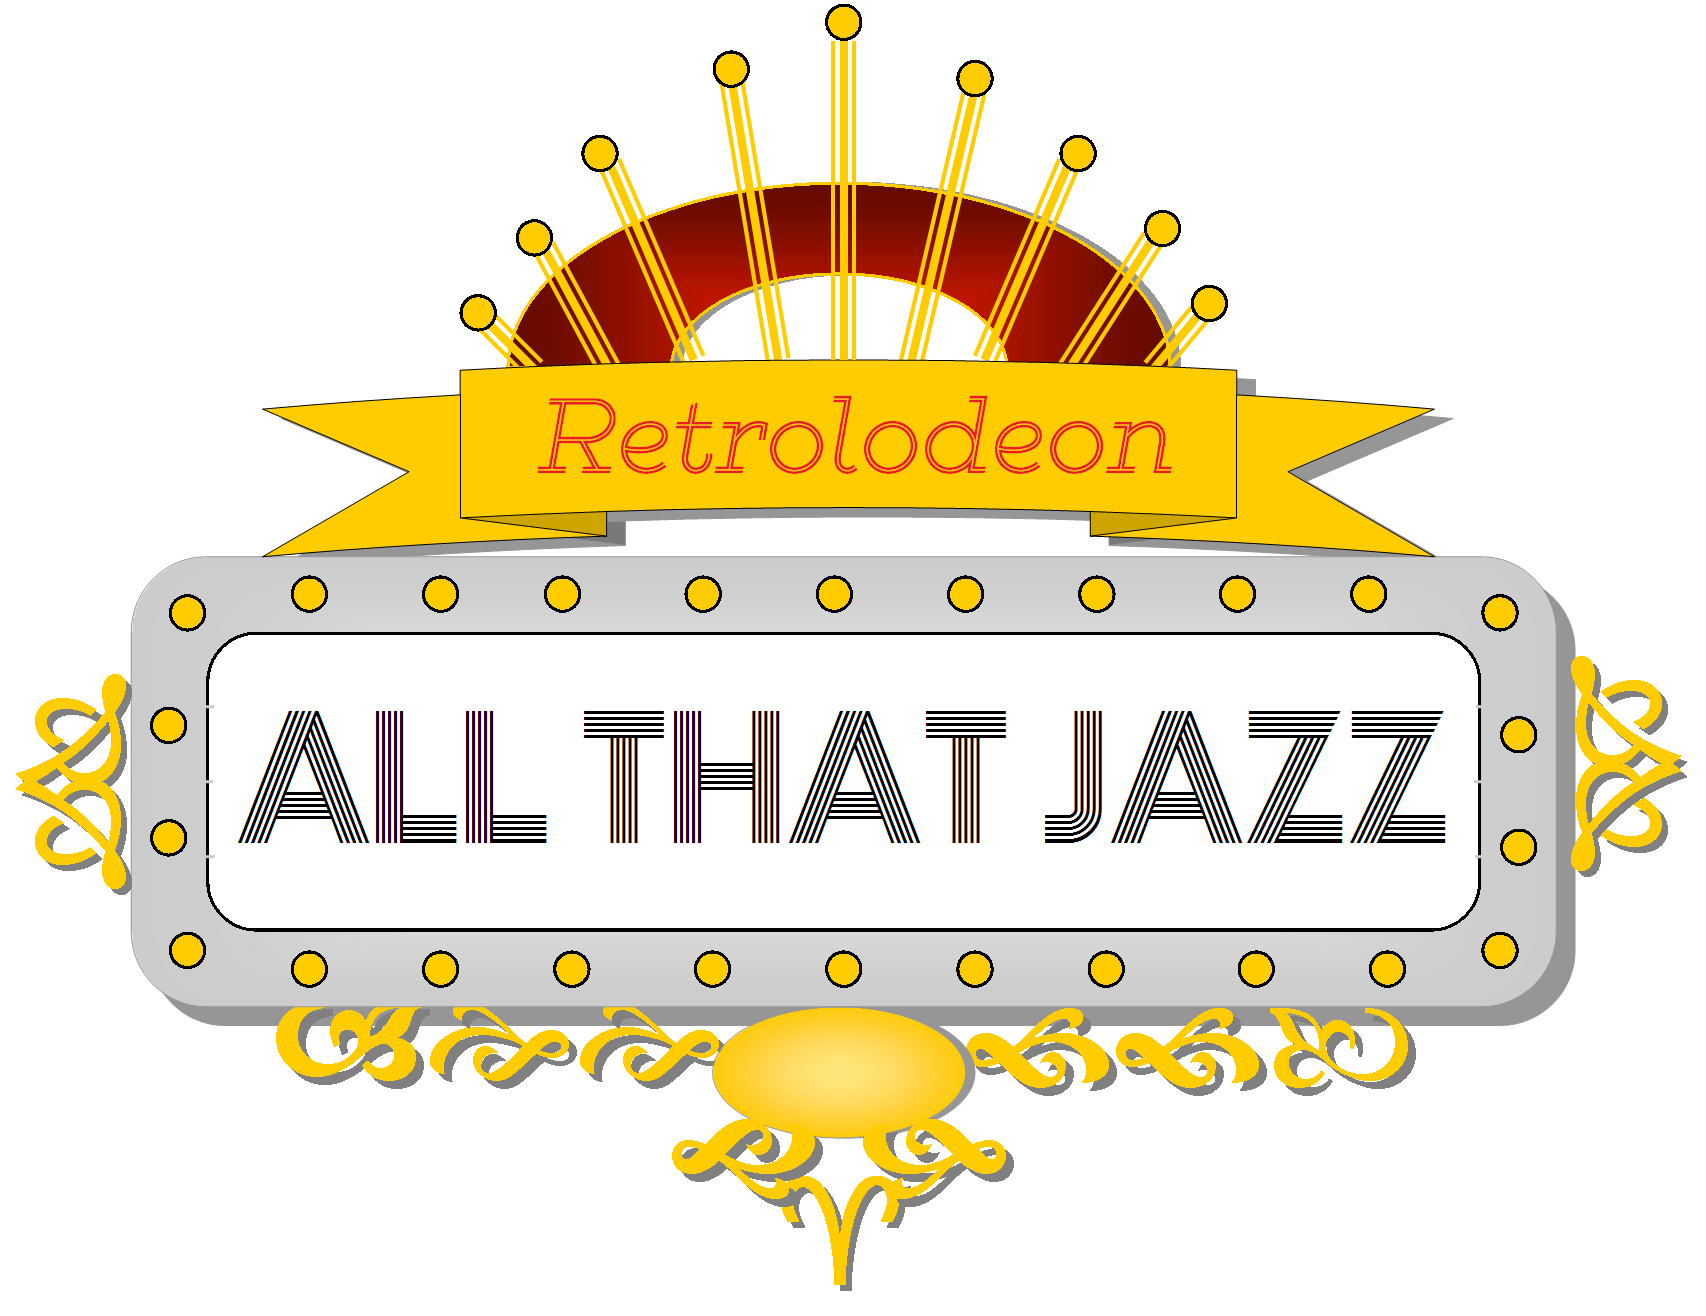 all-that-jazz-retrolodeon